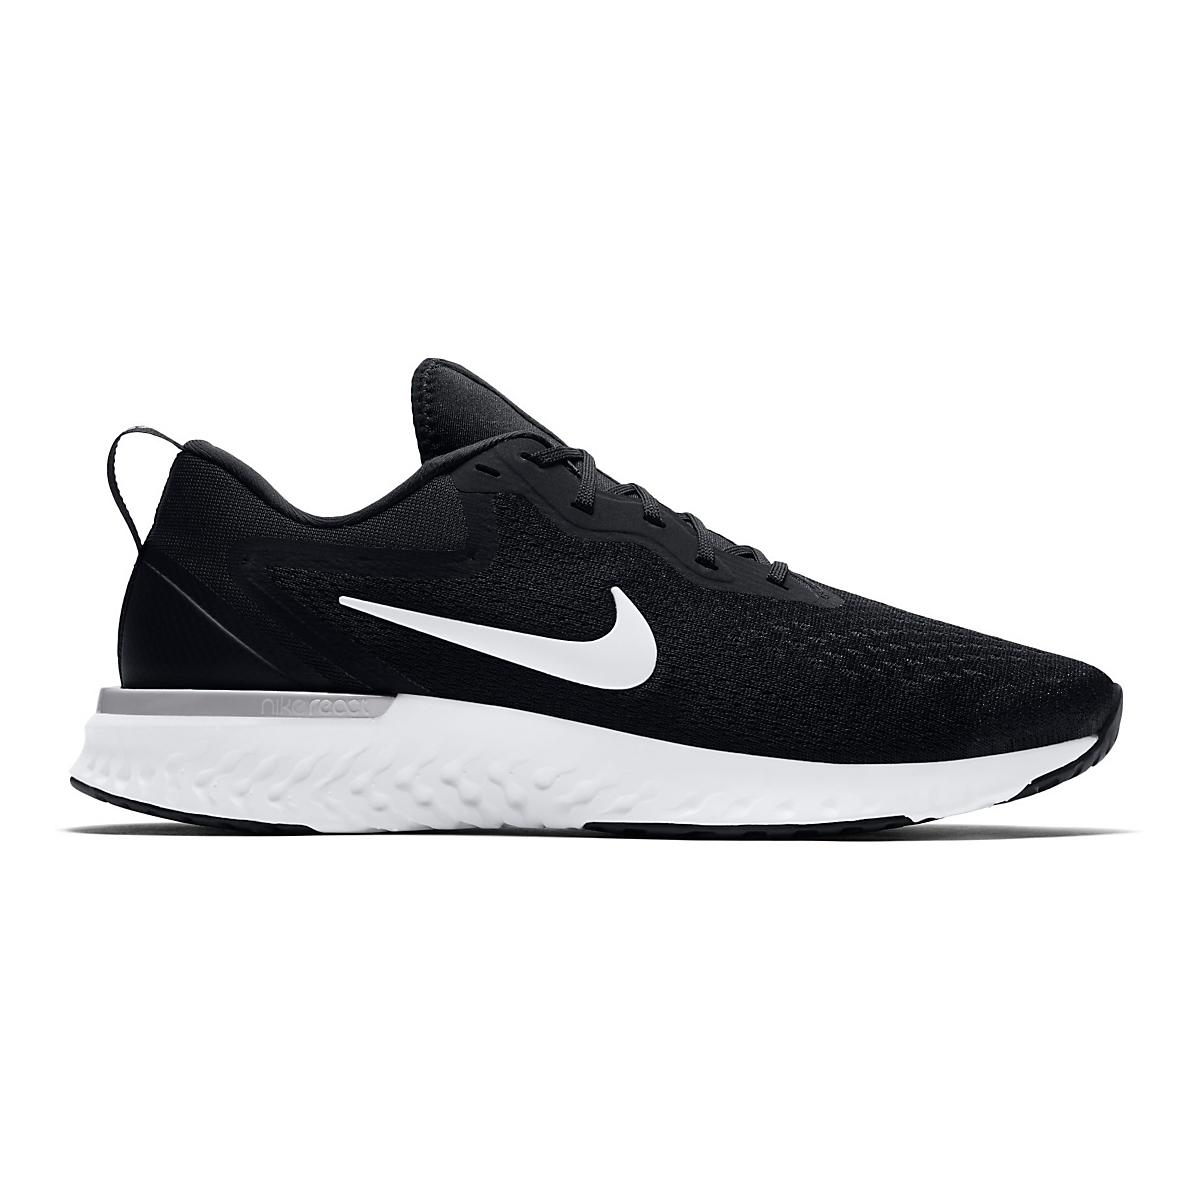 sports shoes 0aecd c36fc Mens Nike Odyssey React Running Shoe at Road Runner Sports